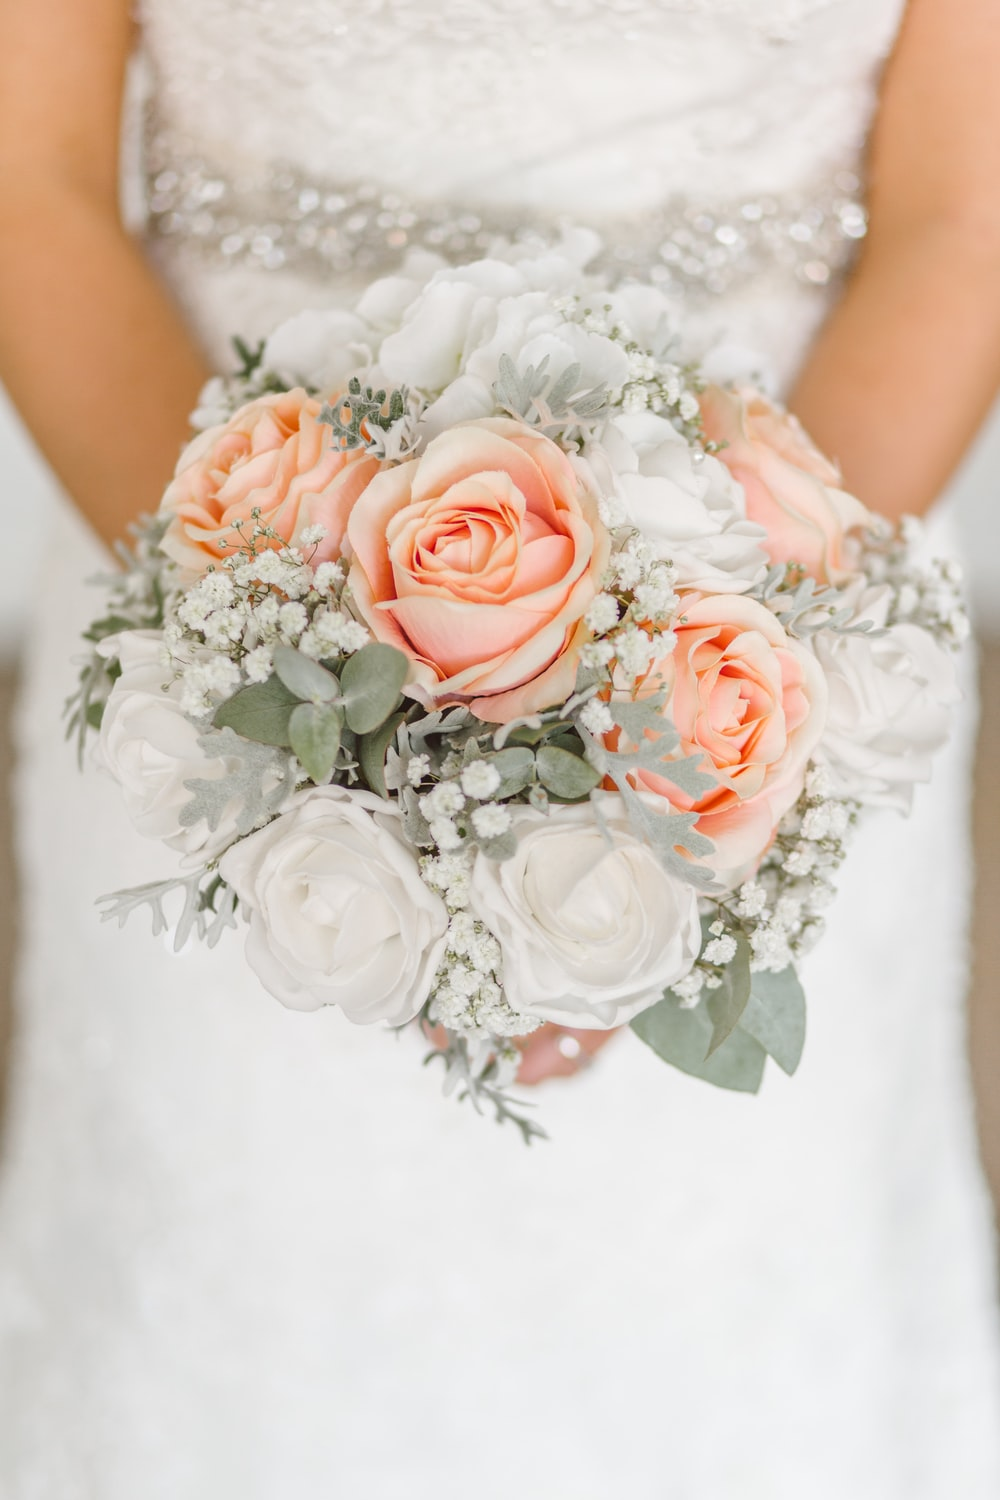 woman holding white and pink rose flower bouquet